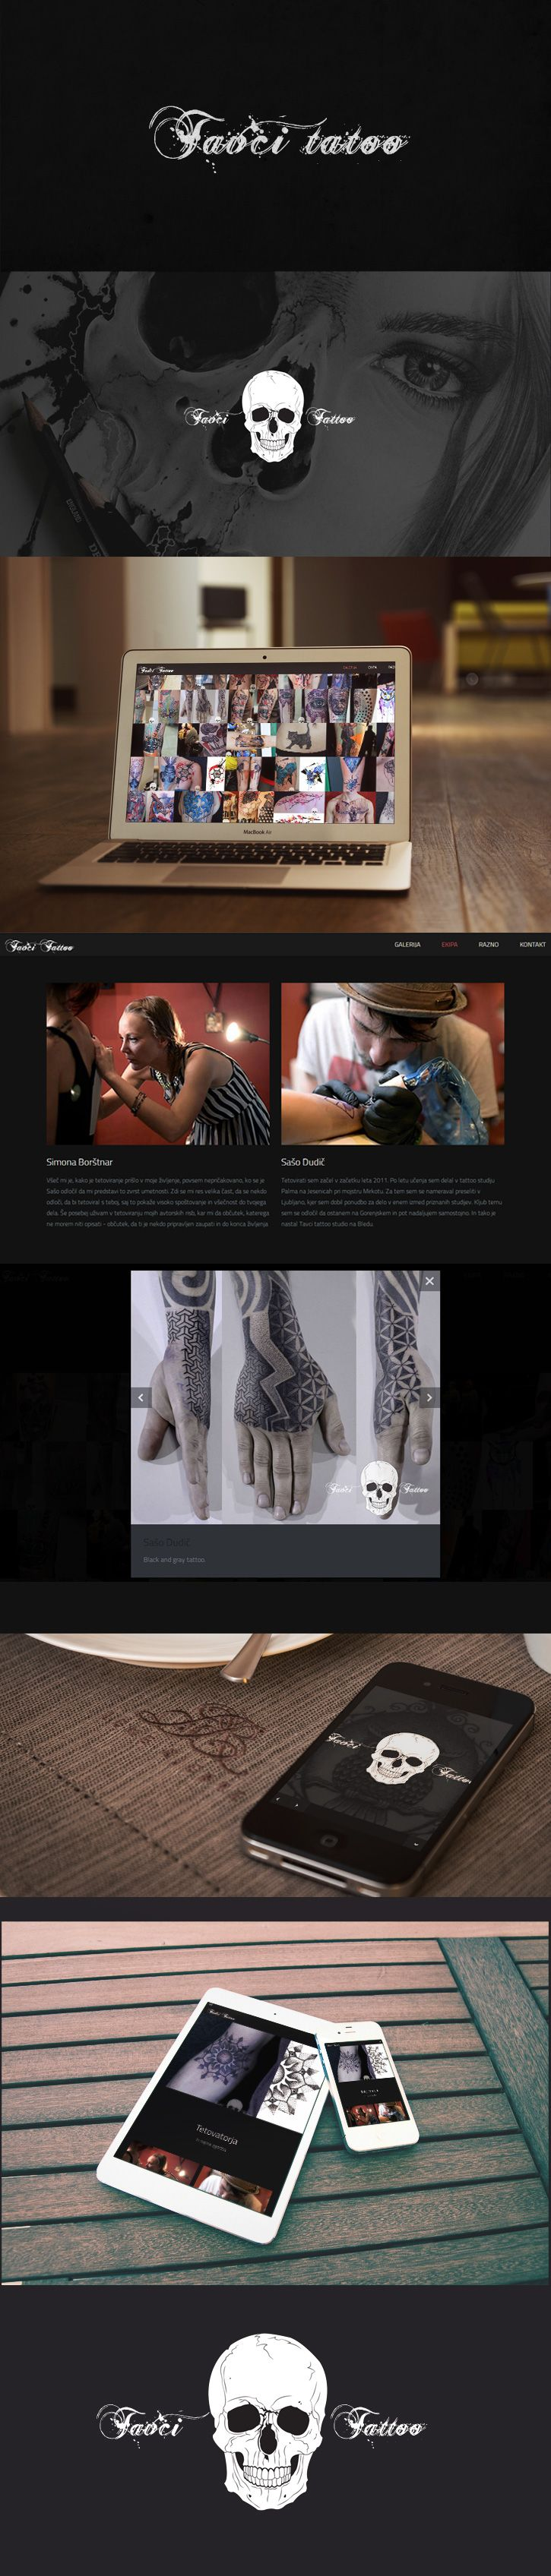 Redesign of the 2011 website of the renowned slovenian tattoo studio. http://www.tavci-tattoo.si/